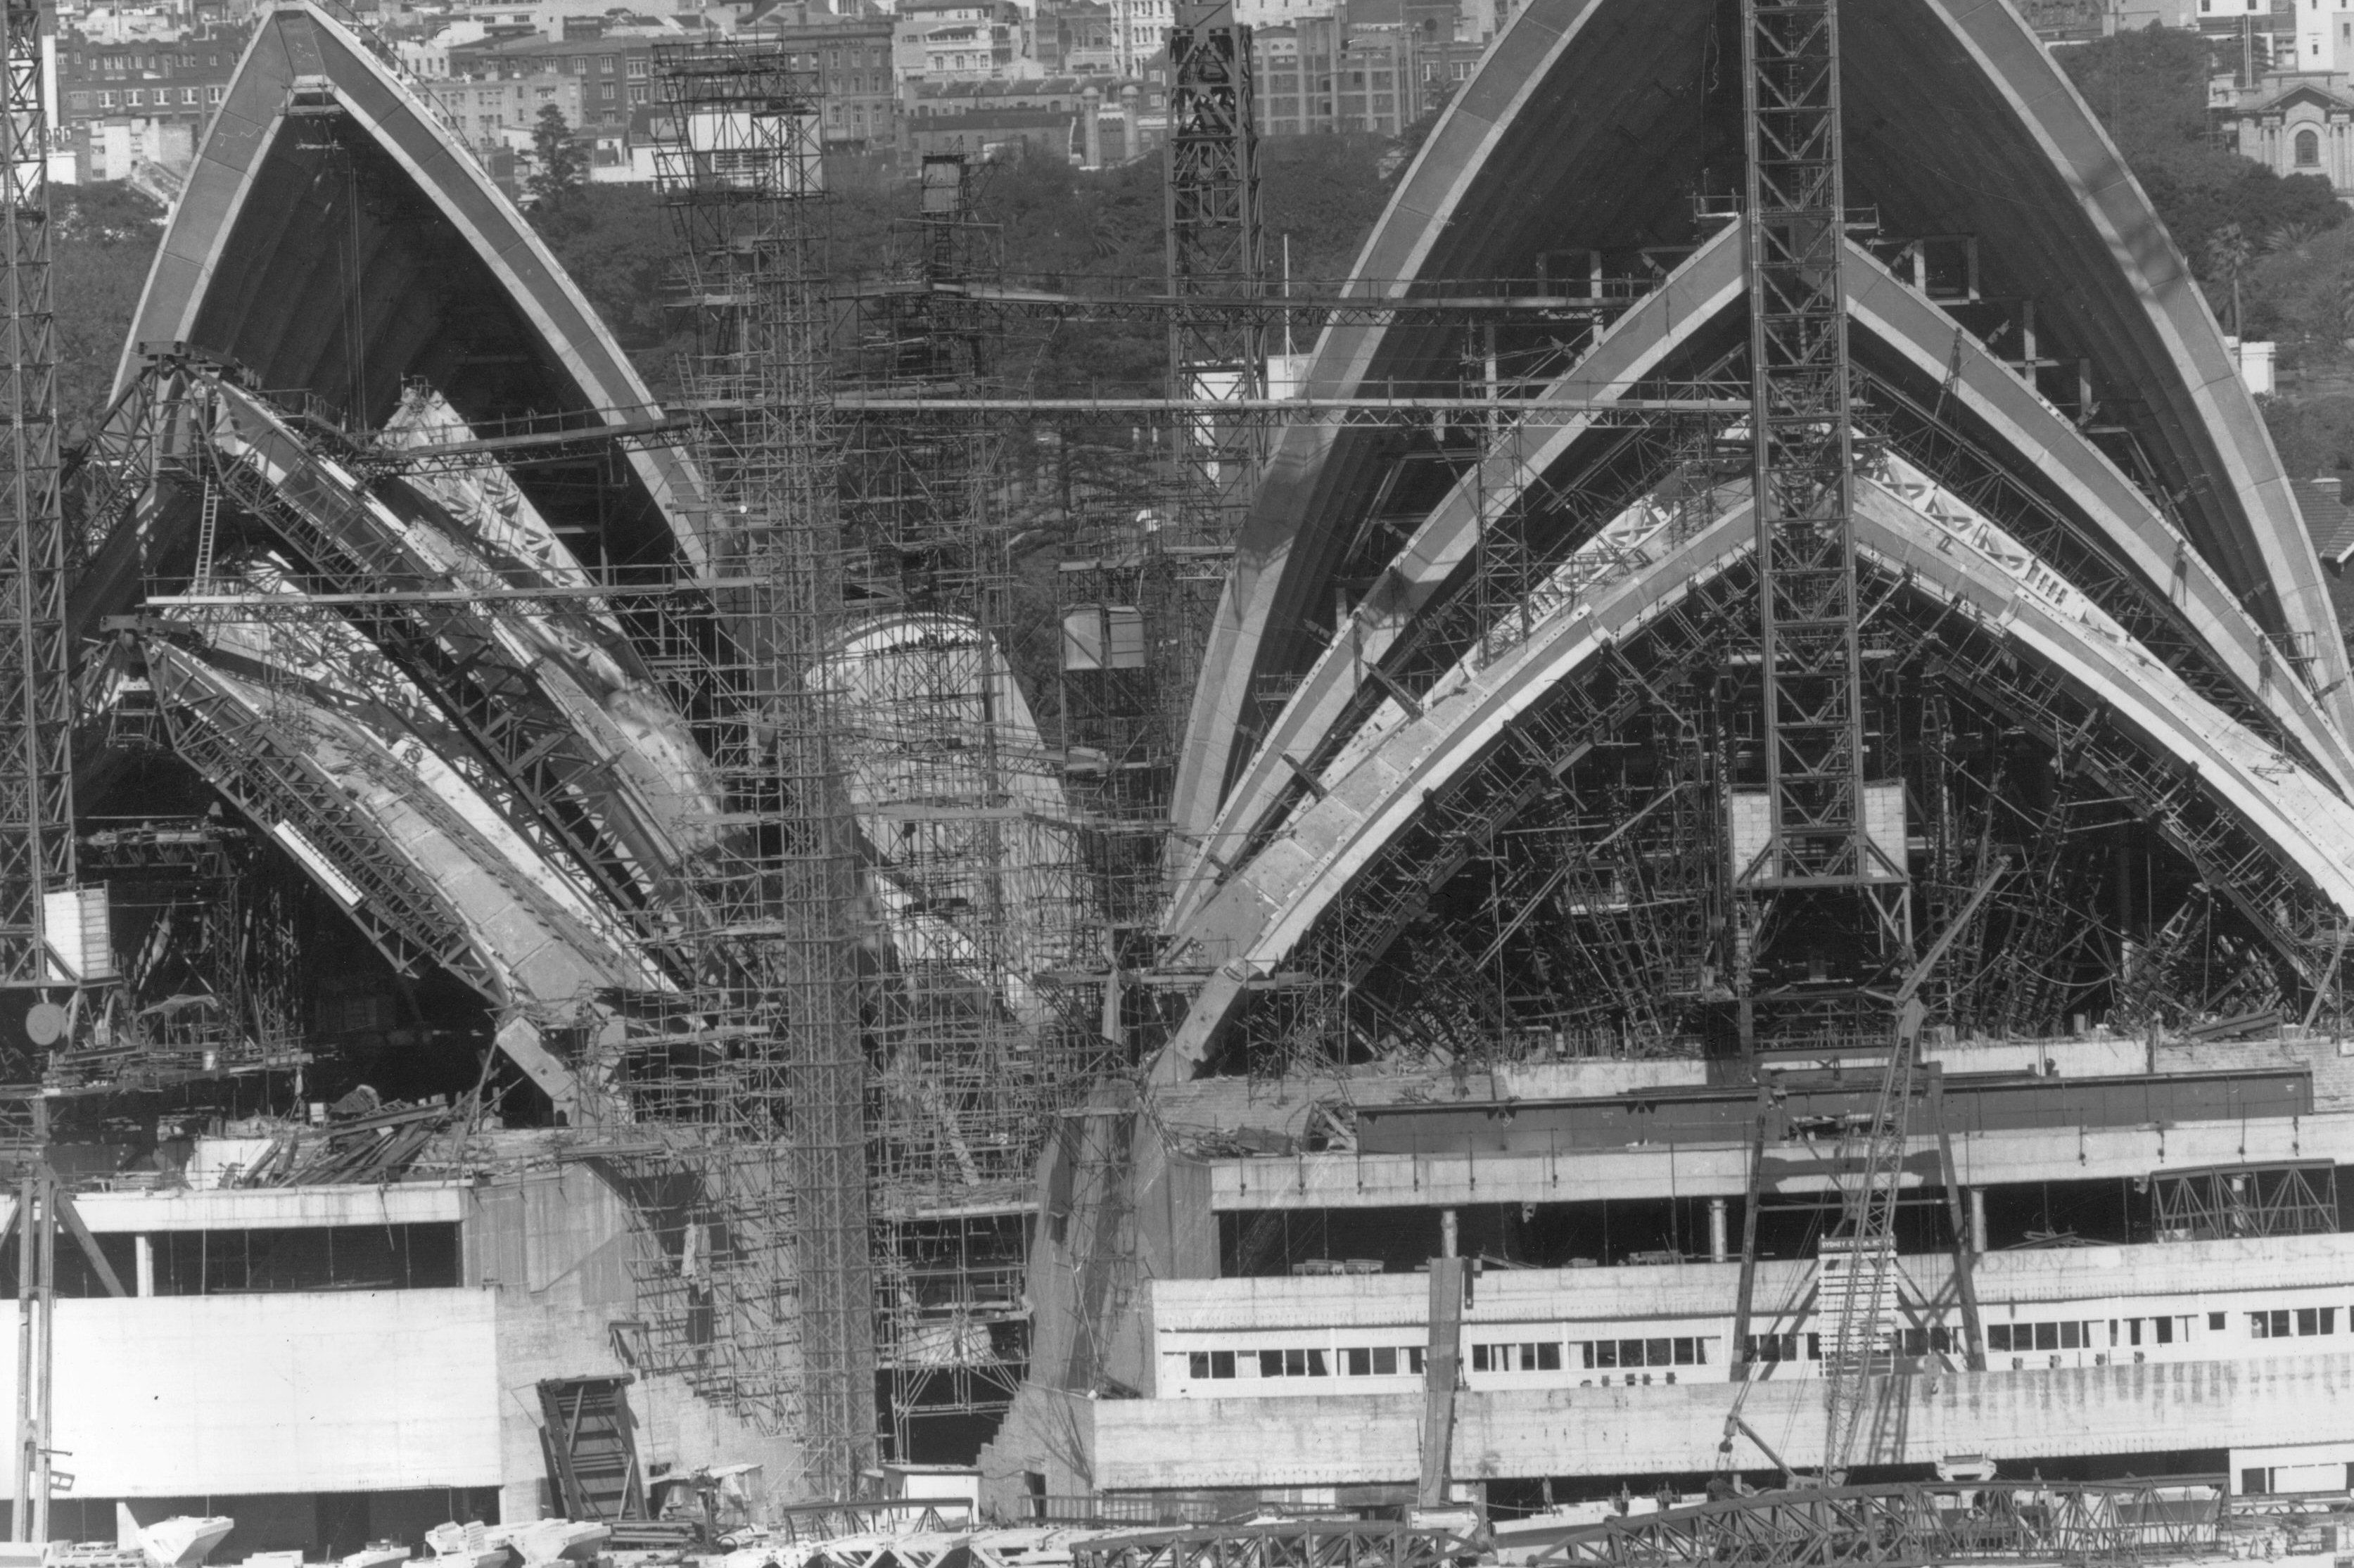 black and white photo of scaffolding and cranes surrounding triangular structures